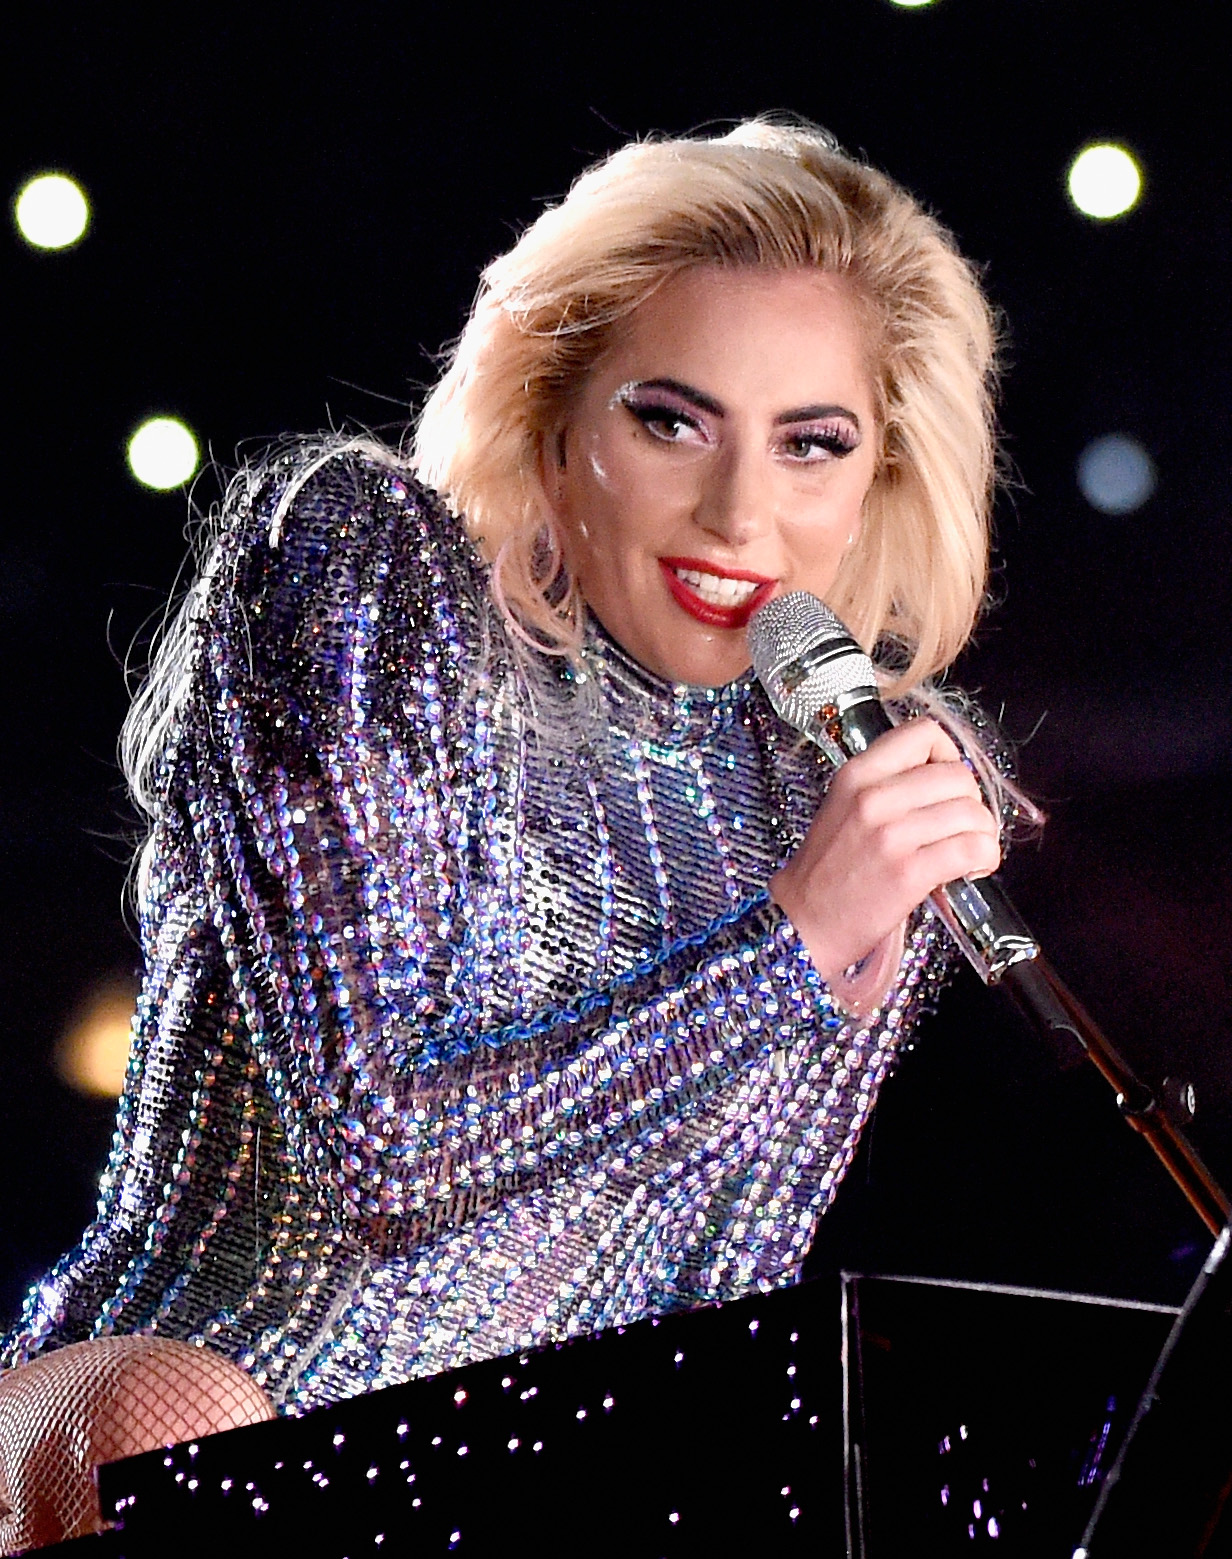 HOUSTON, TX - FEBRUARY 05: Musician Lady Gaga performs onstage during the Pepsi Zero Sugar Super Bowl LI Halftime Show at NRG Stadium on February 5, 2017 in Houston, Texas. (Photo by Kevin Mazur/WireImage)